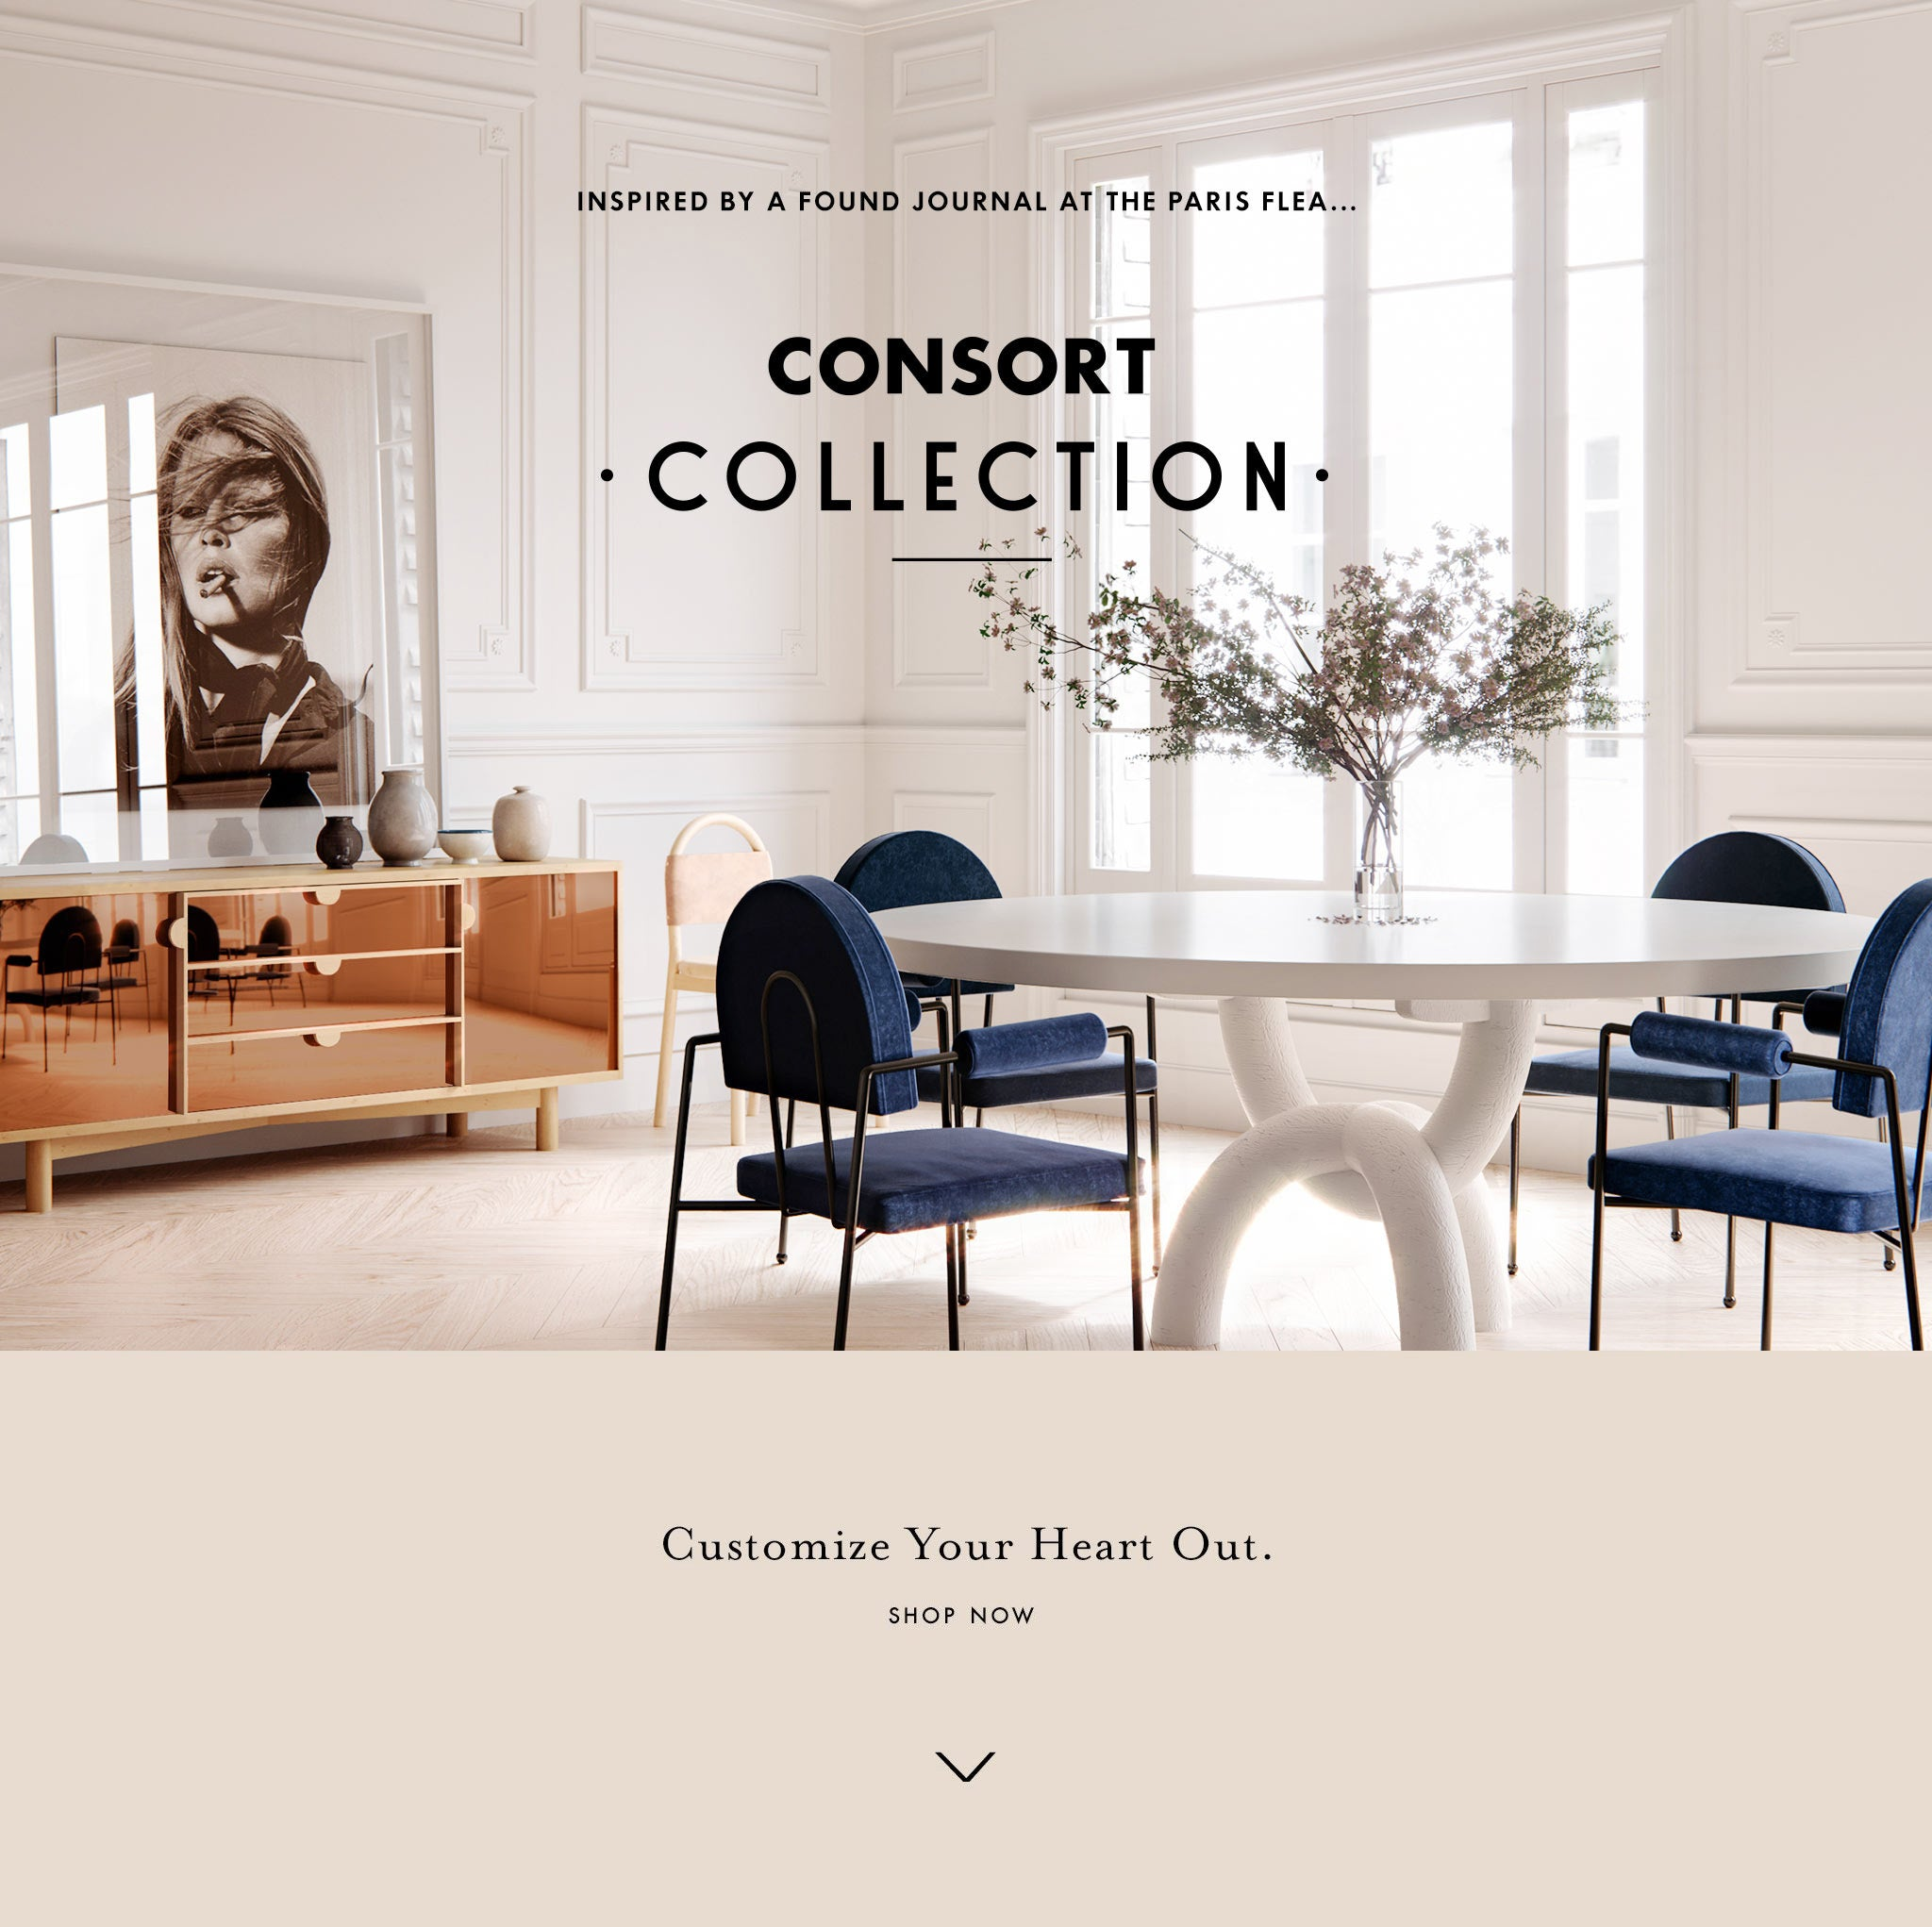 Consort Collection